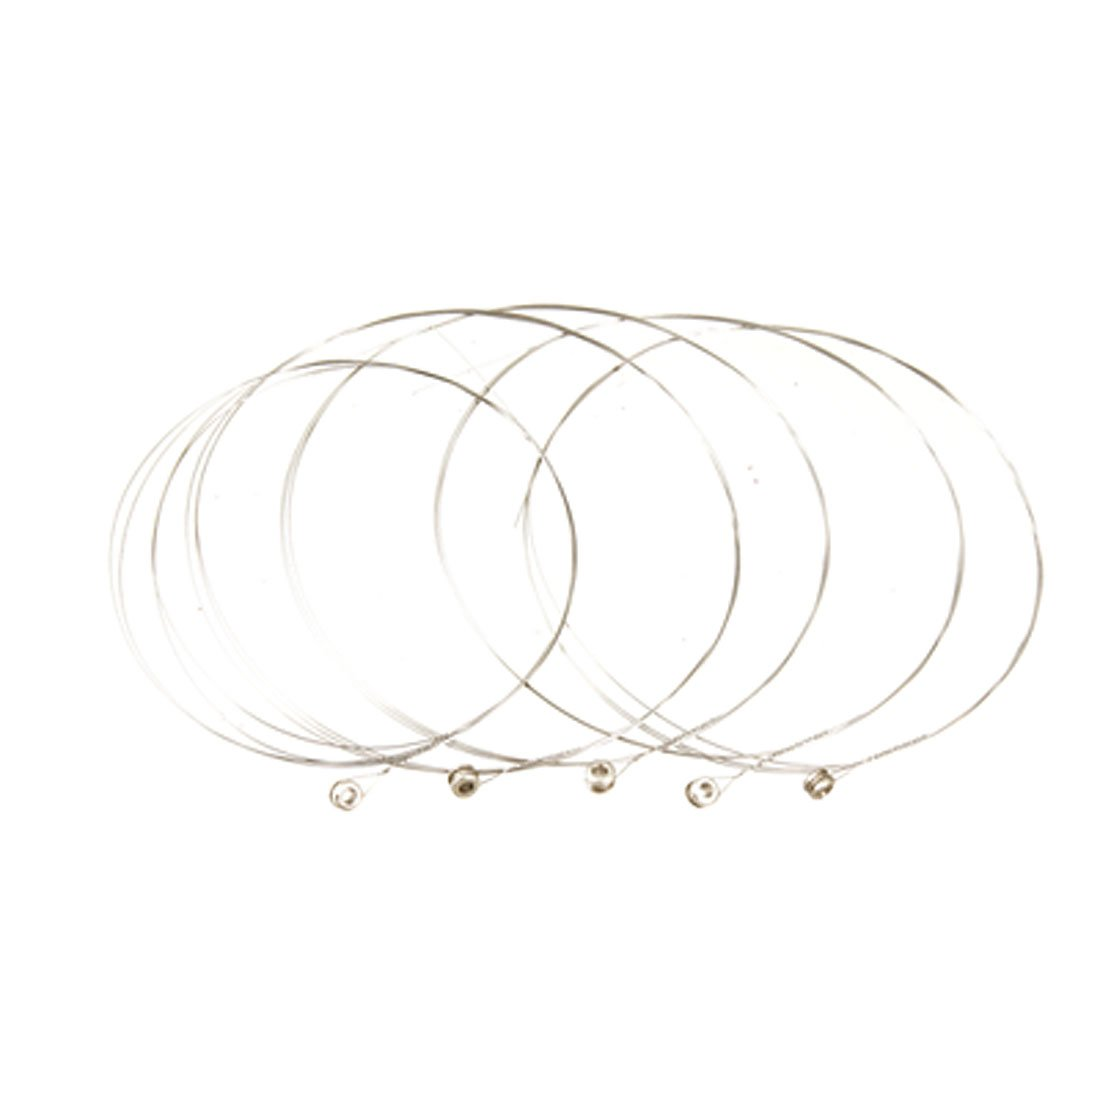 Wholesale 5X SYDS 5 Pcs Silver Tone Steel Strings E-1 for Acoustic Guitar